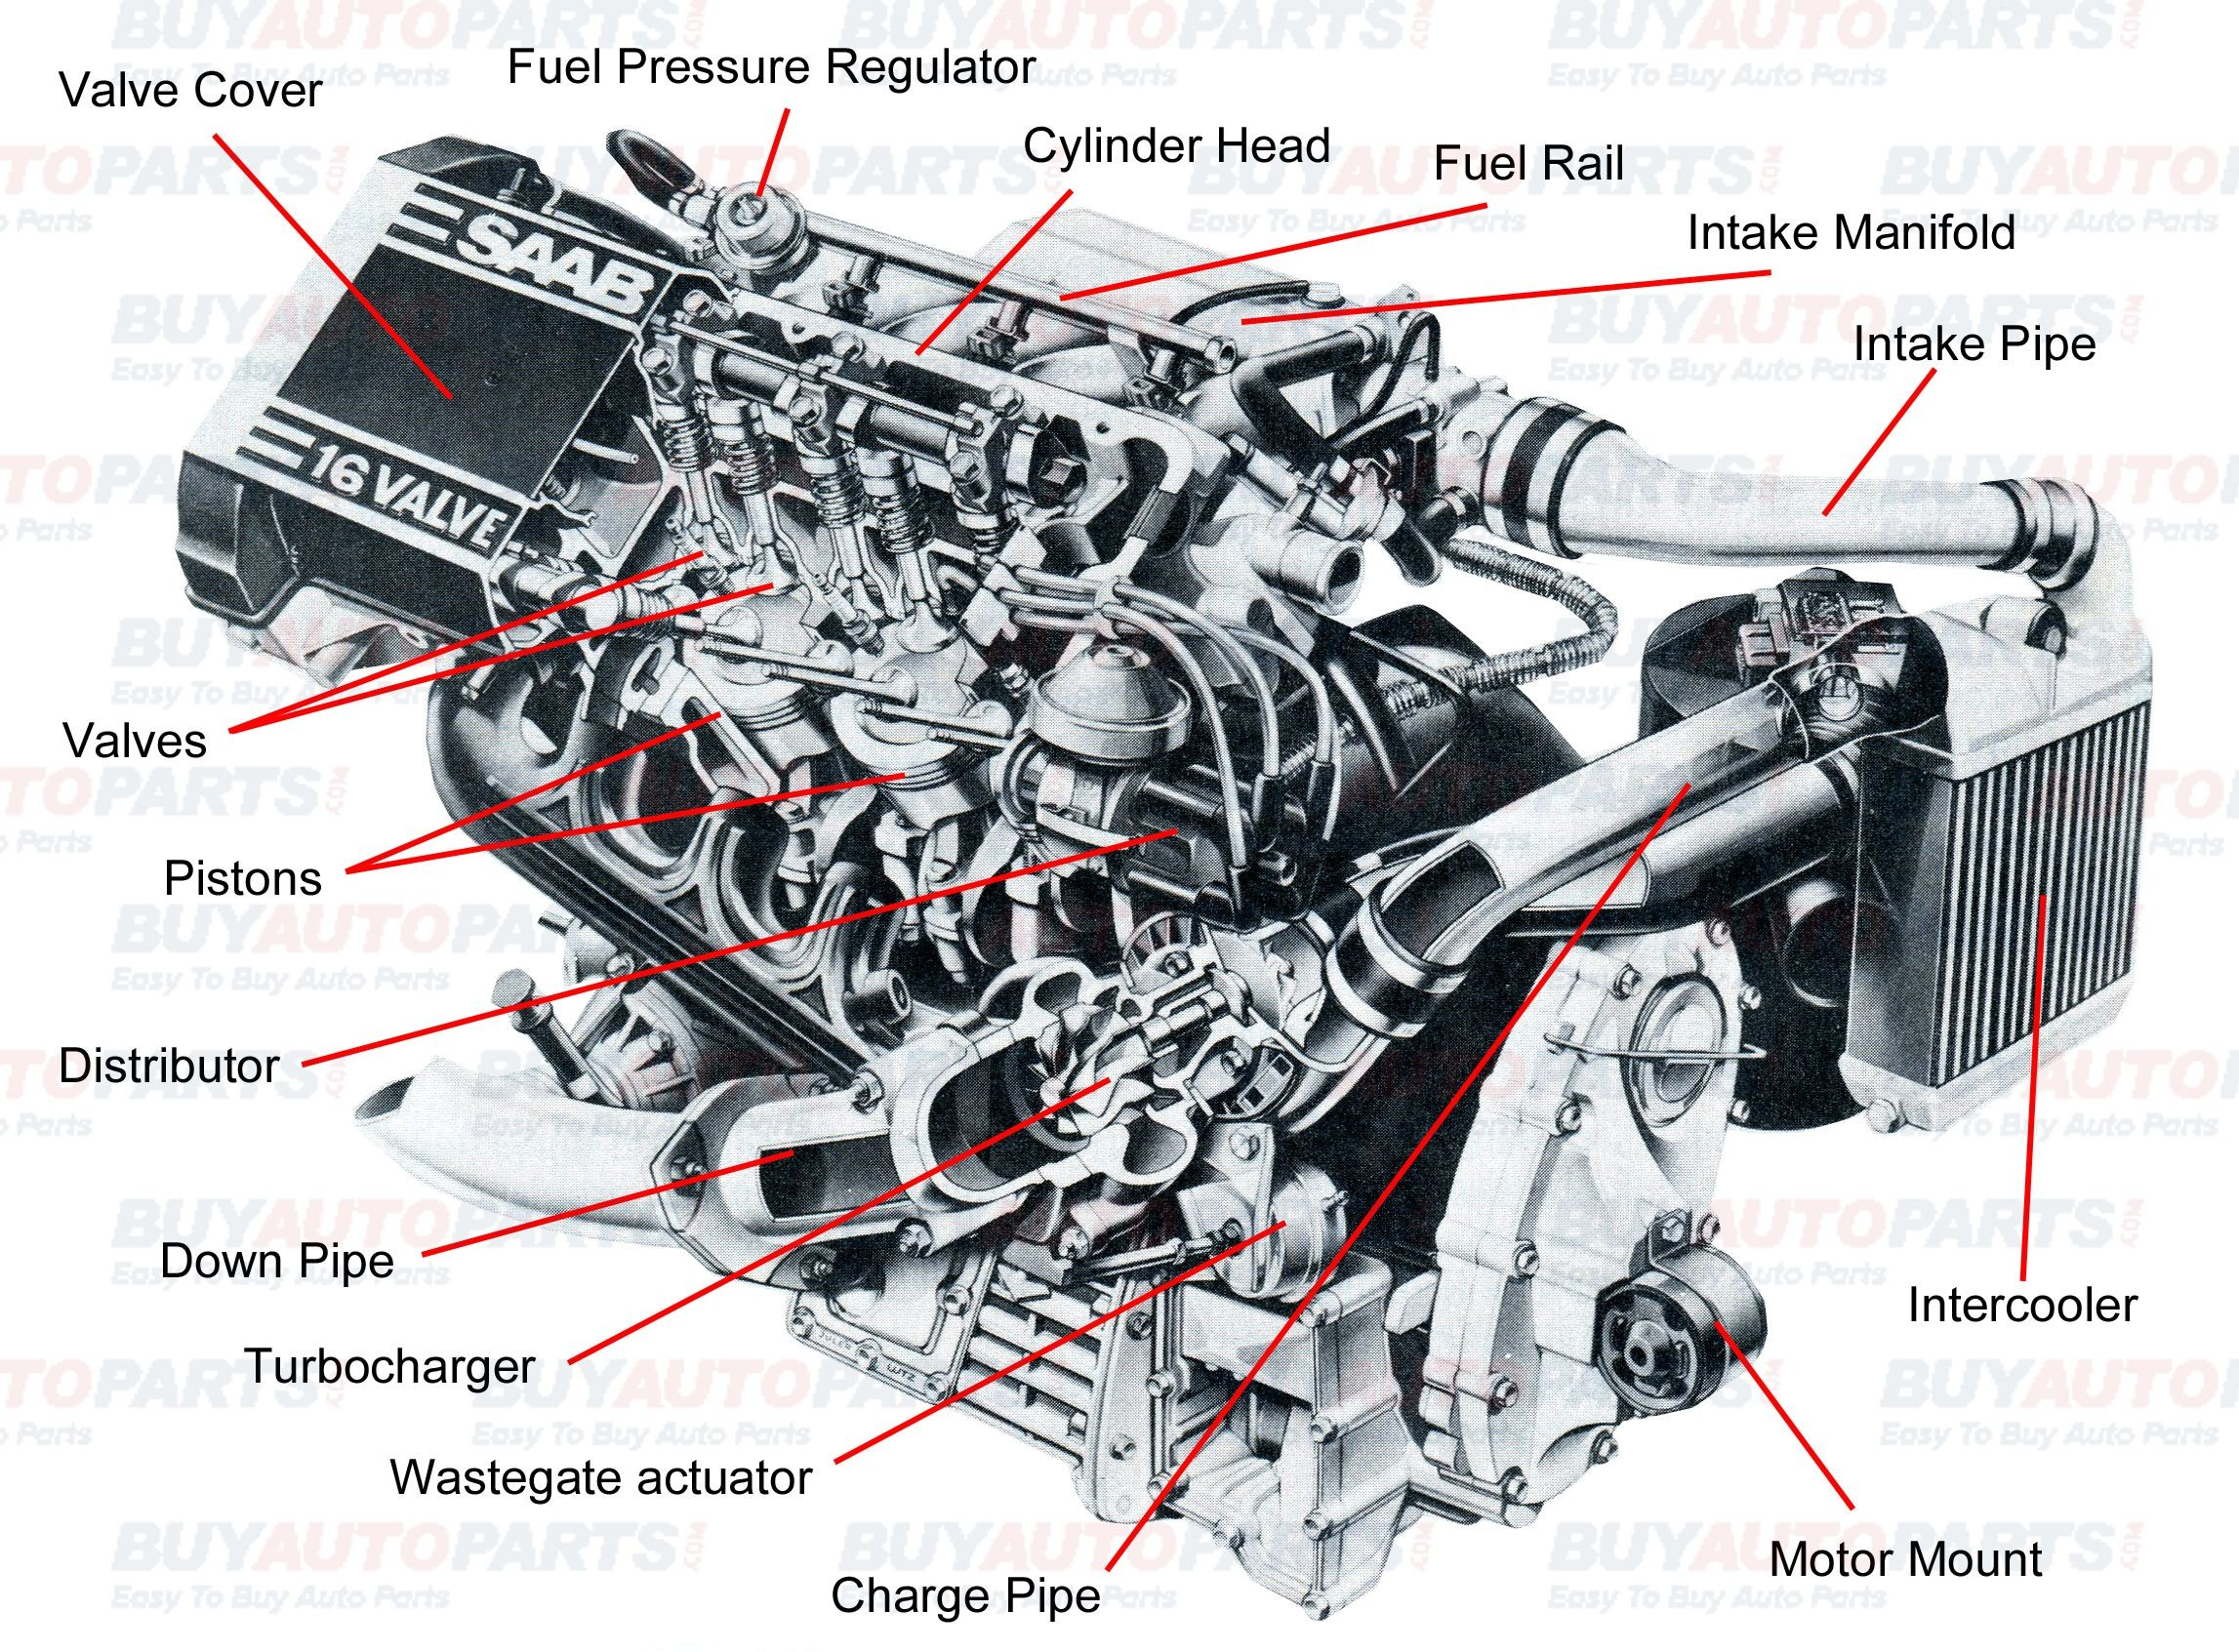 Diagram Of Car Motor Pin by Jimmiejanet Testellamwfz On What Does An Engine with Turbo Of Diagram Of Car Motor